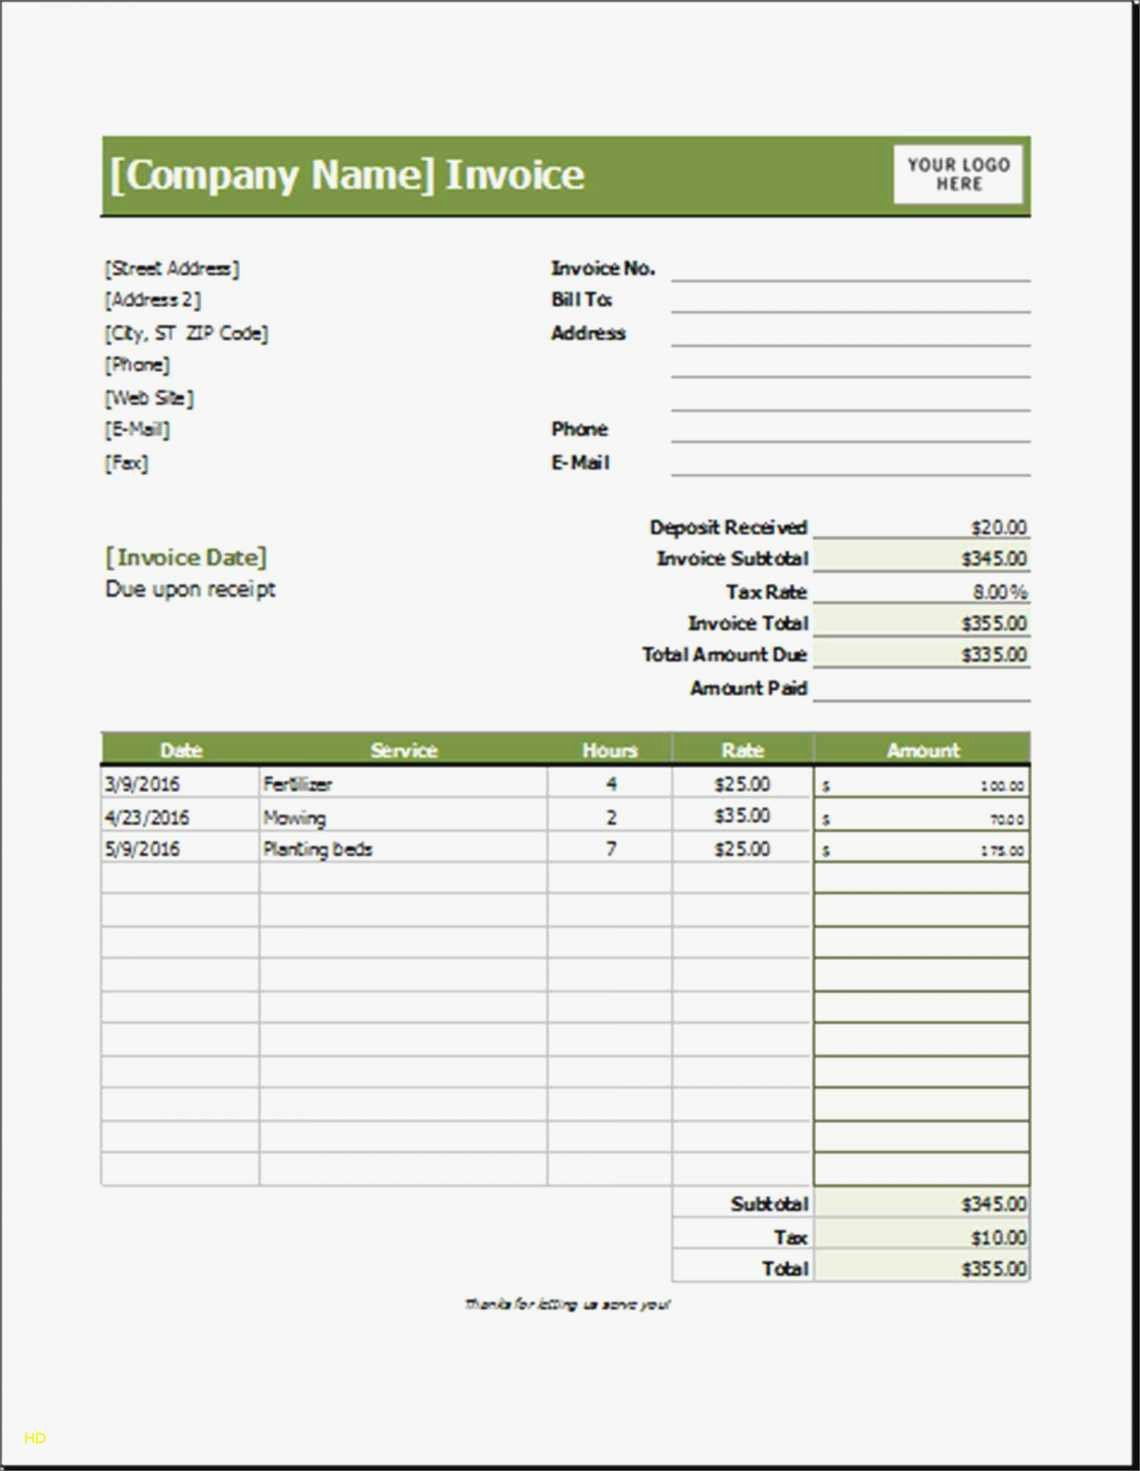 Landscaping Invoice Template Free Best Of Landscaping Invoice Template Excel Free Templates Creative